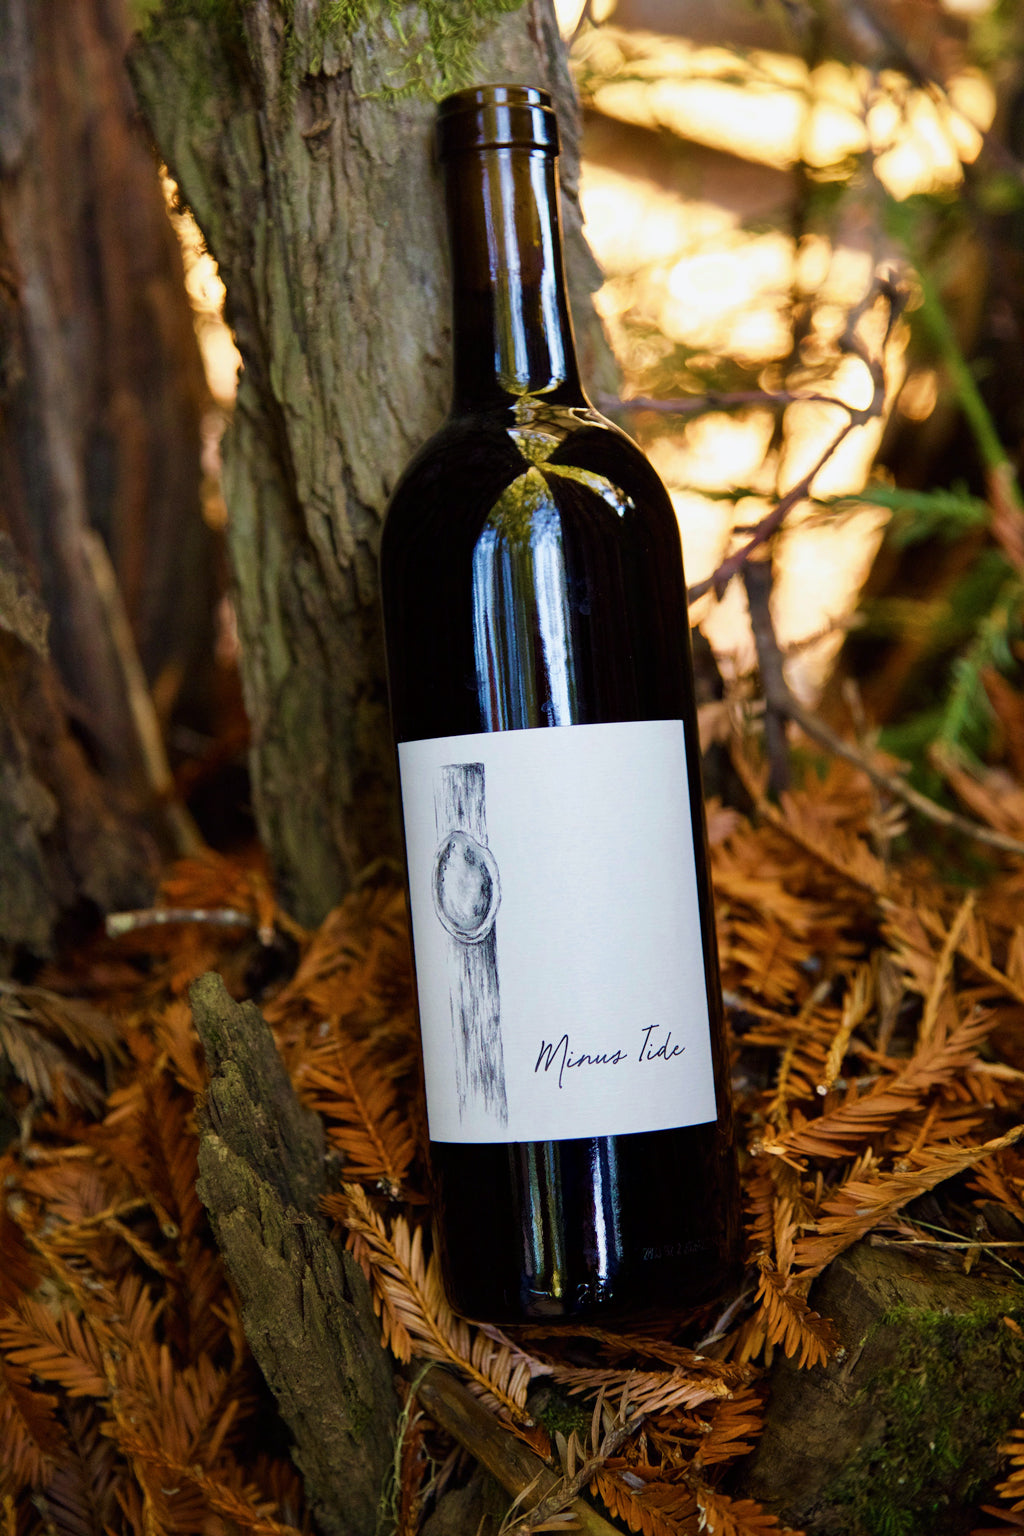 2015 Minus Tide Alder Springs Vineyard Malbec